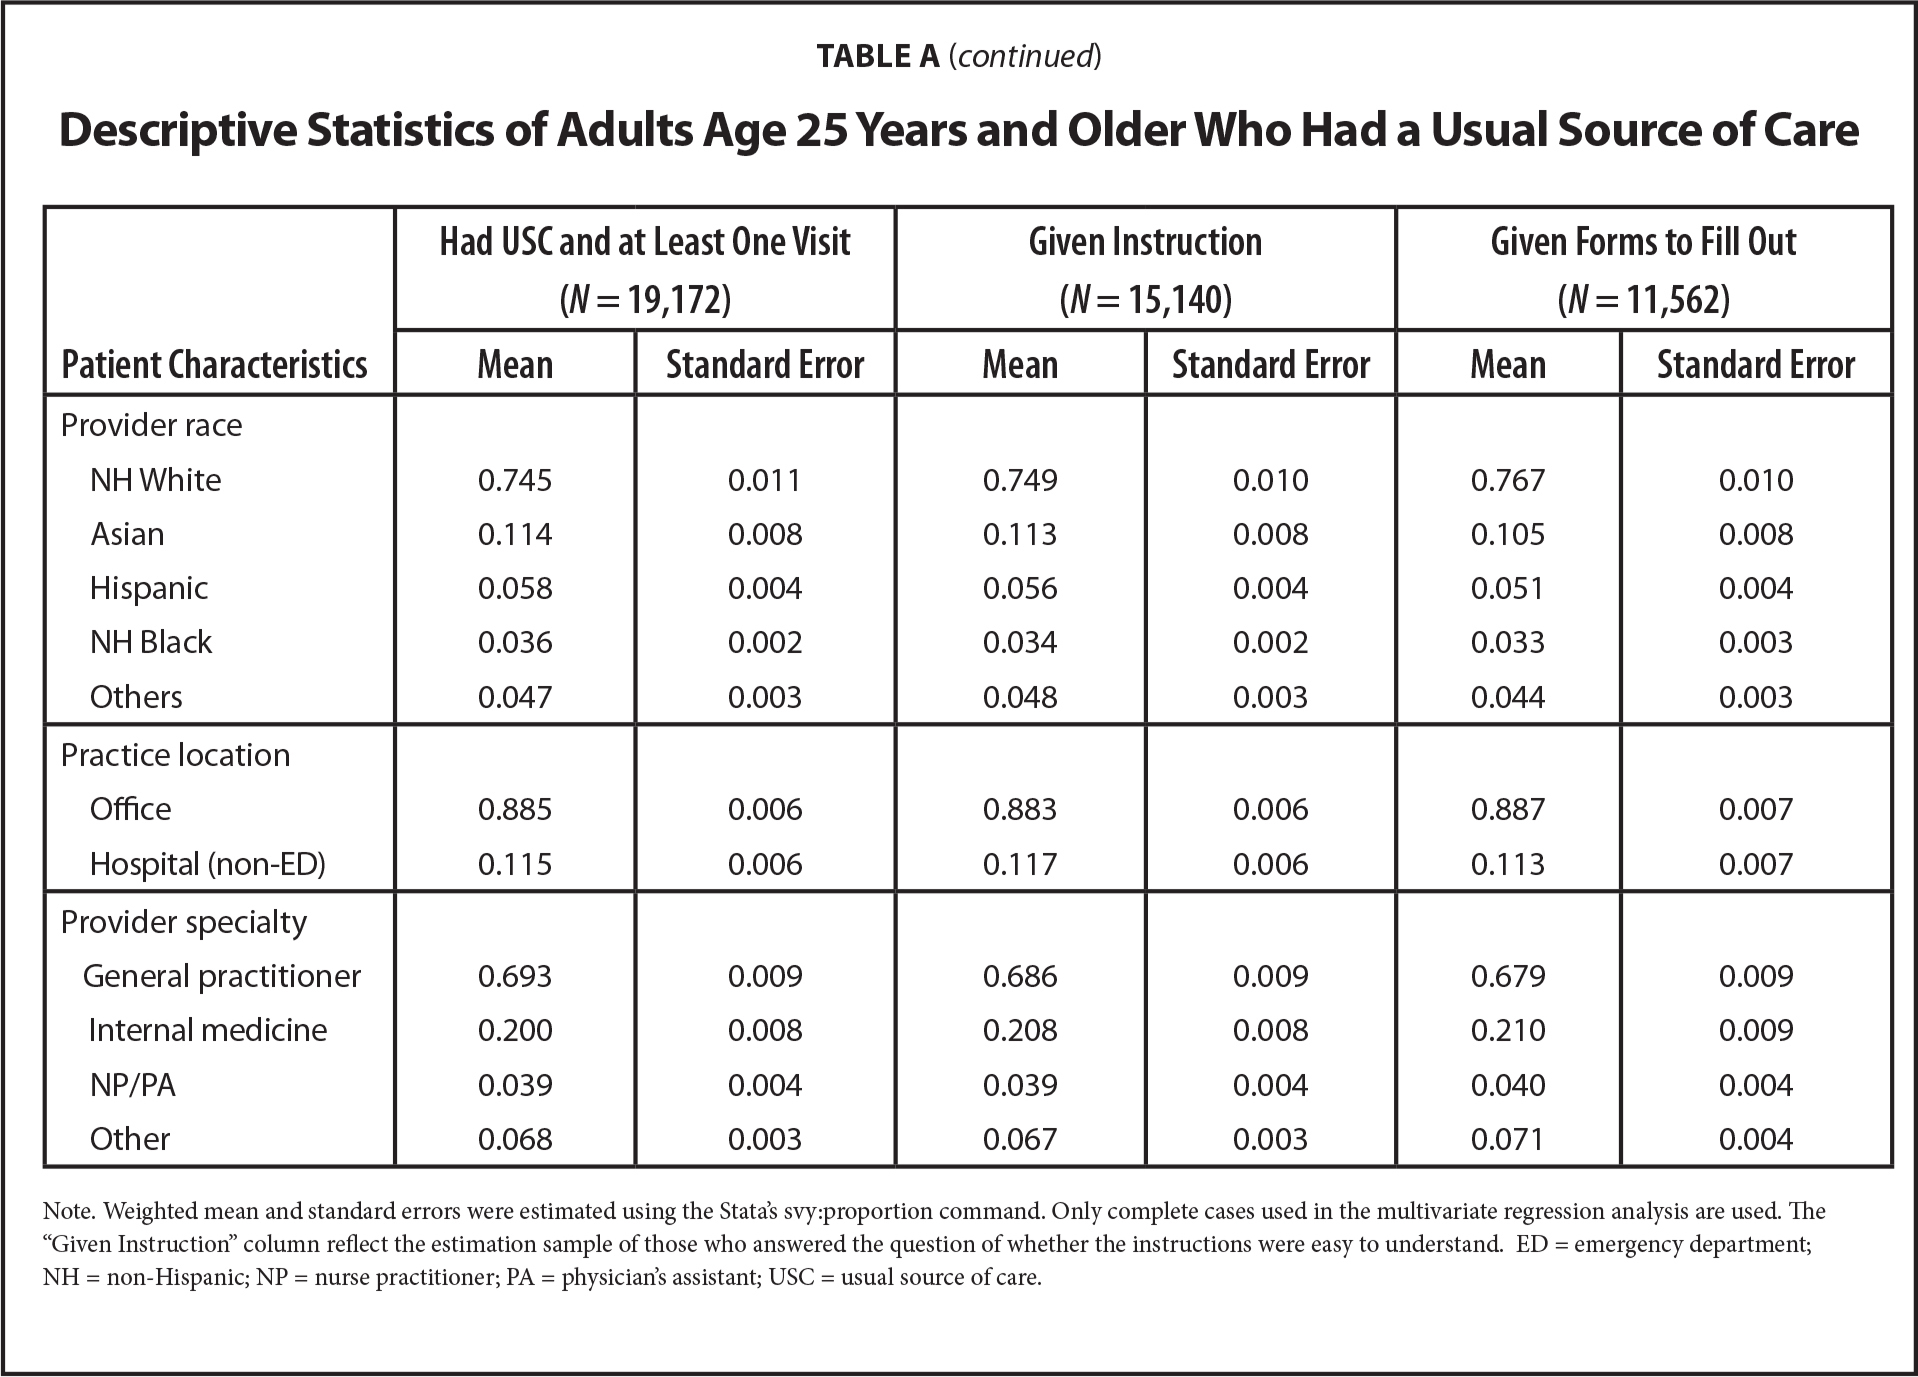 Descriptive Statistics of Adults Age 25 Years and Older Who Had a Usual Source of Care